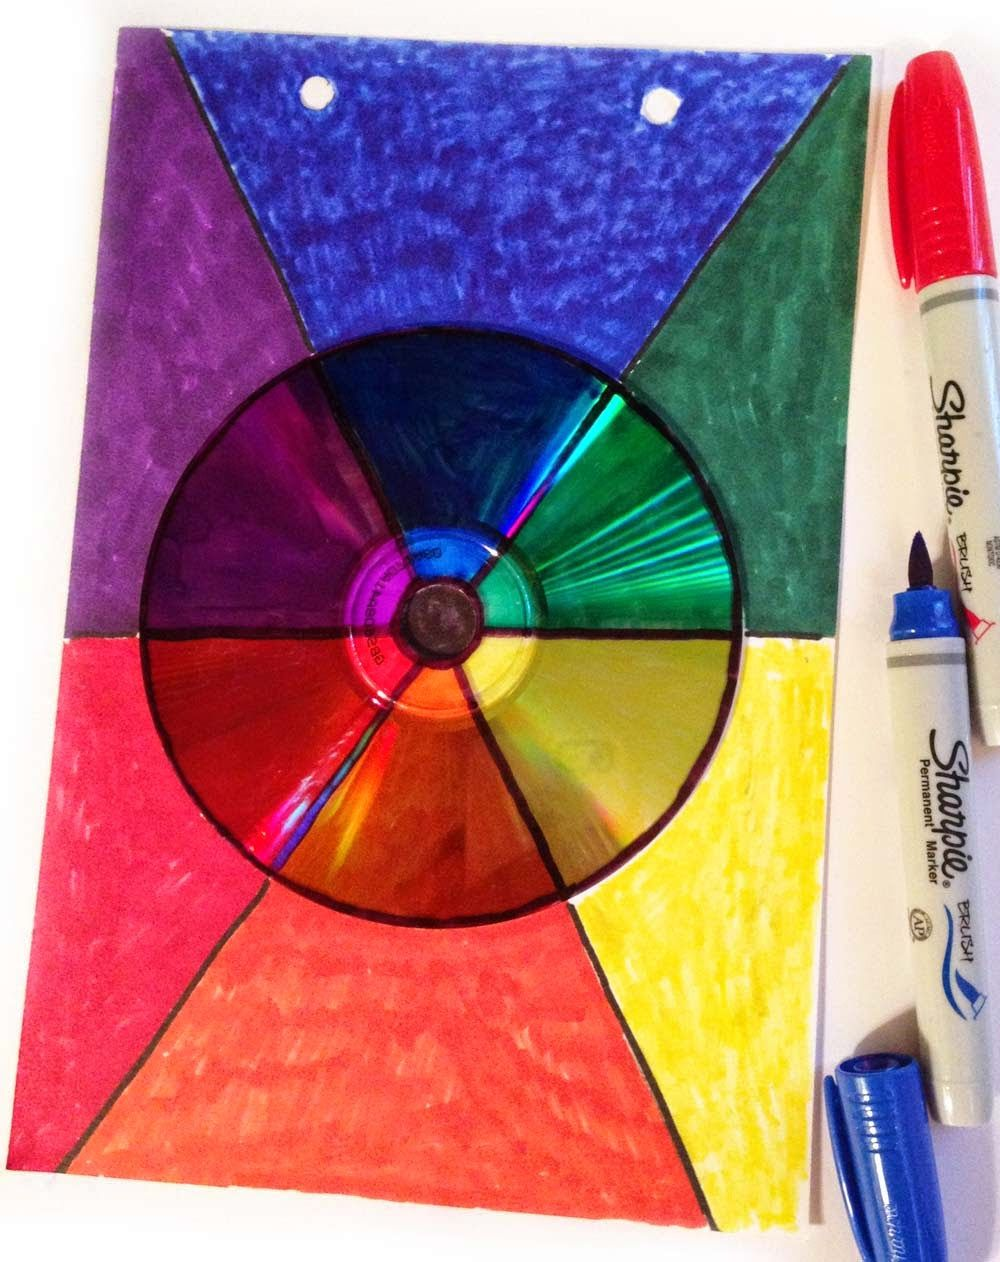 Color wheel art projects for kids - Cd Color Wheel Art Projects For Kids